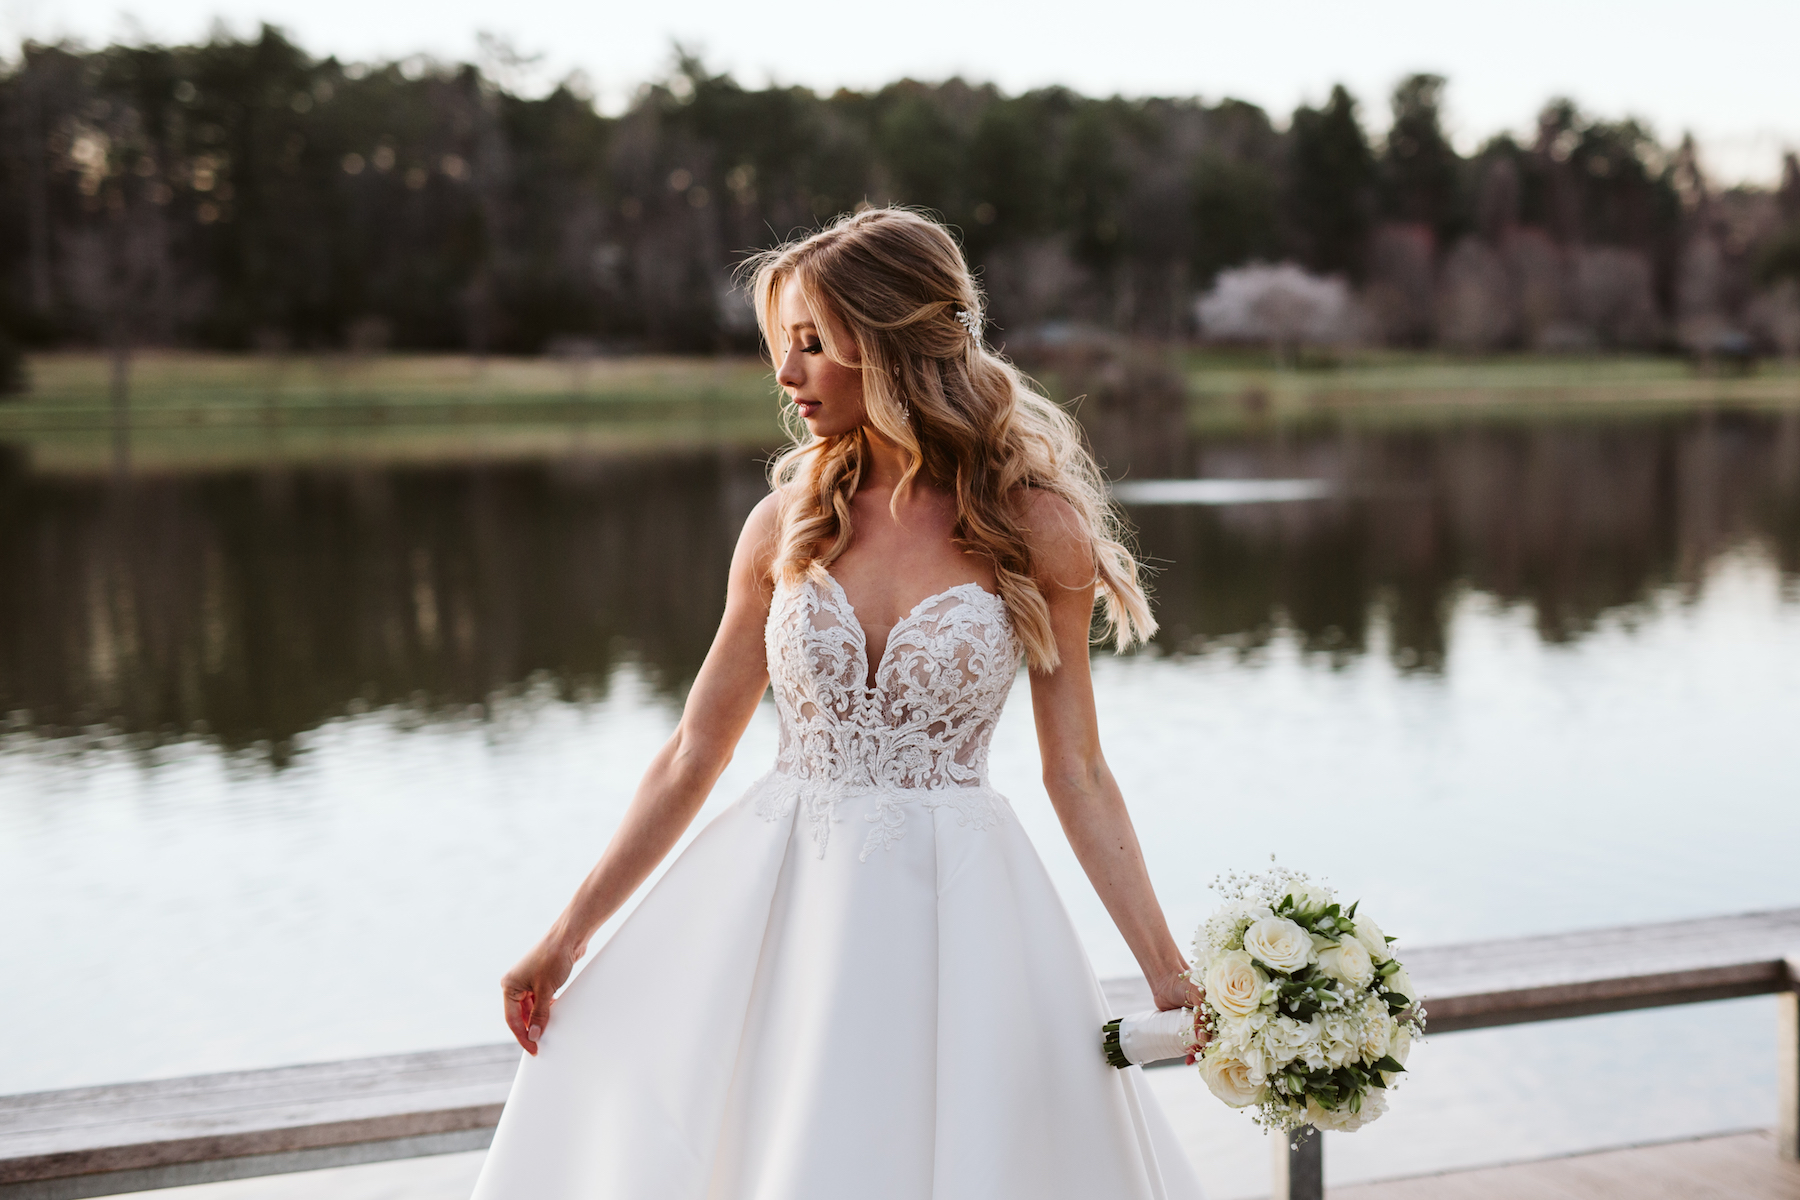 furman-university-bridals-paige-222.JPG